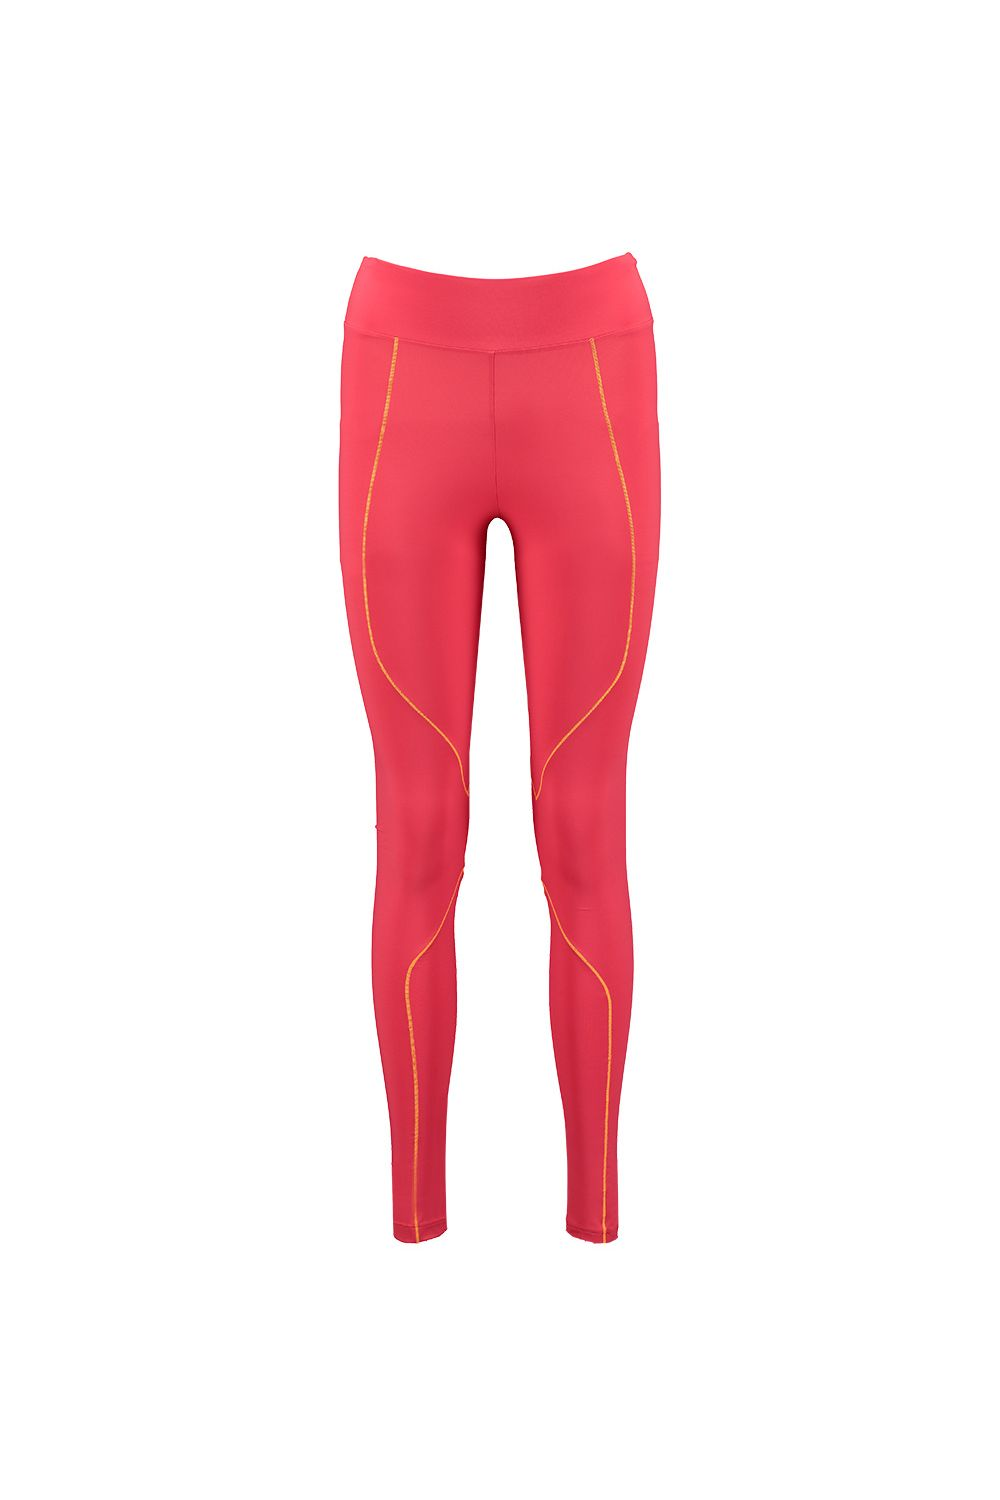 Leggings-Fitness-Micro-Metric--1-